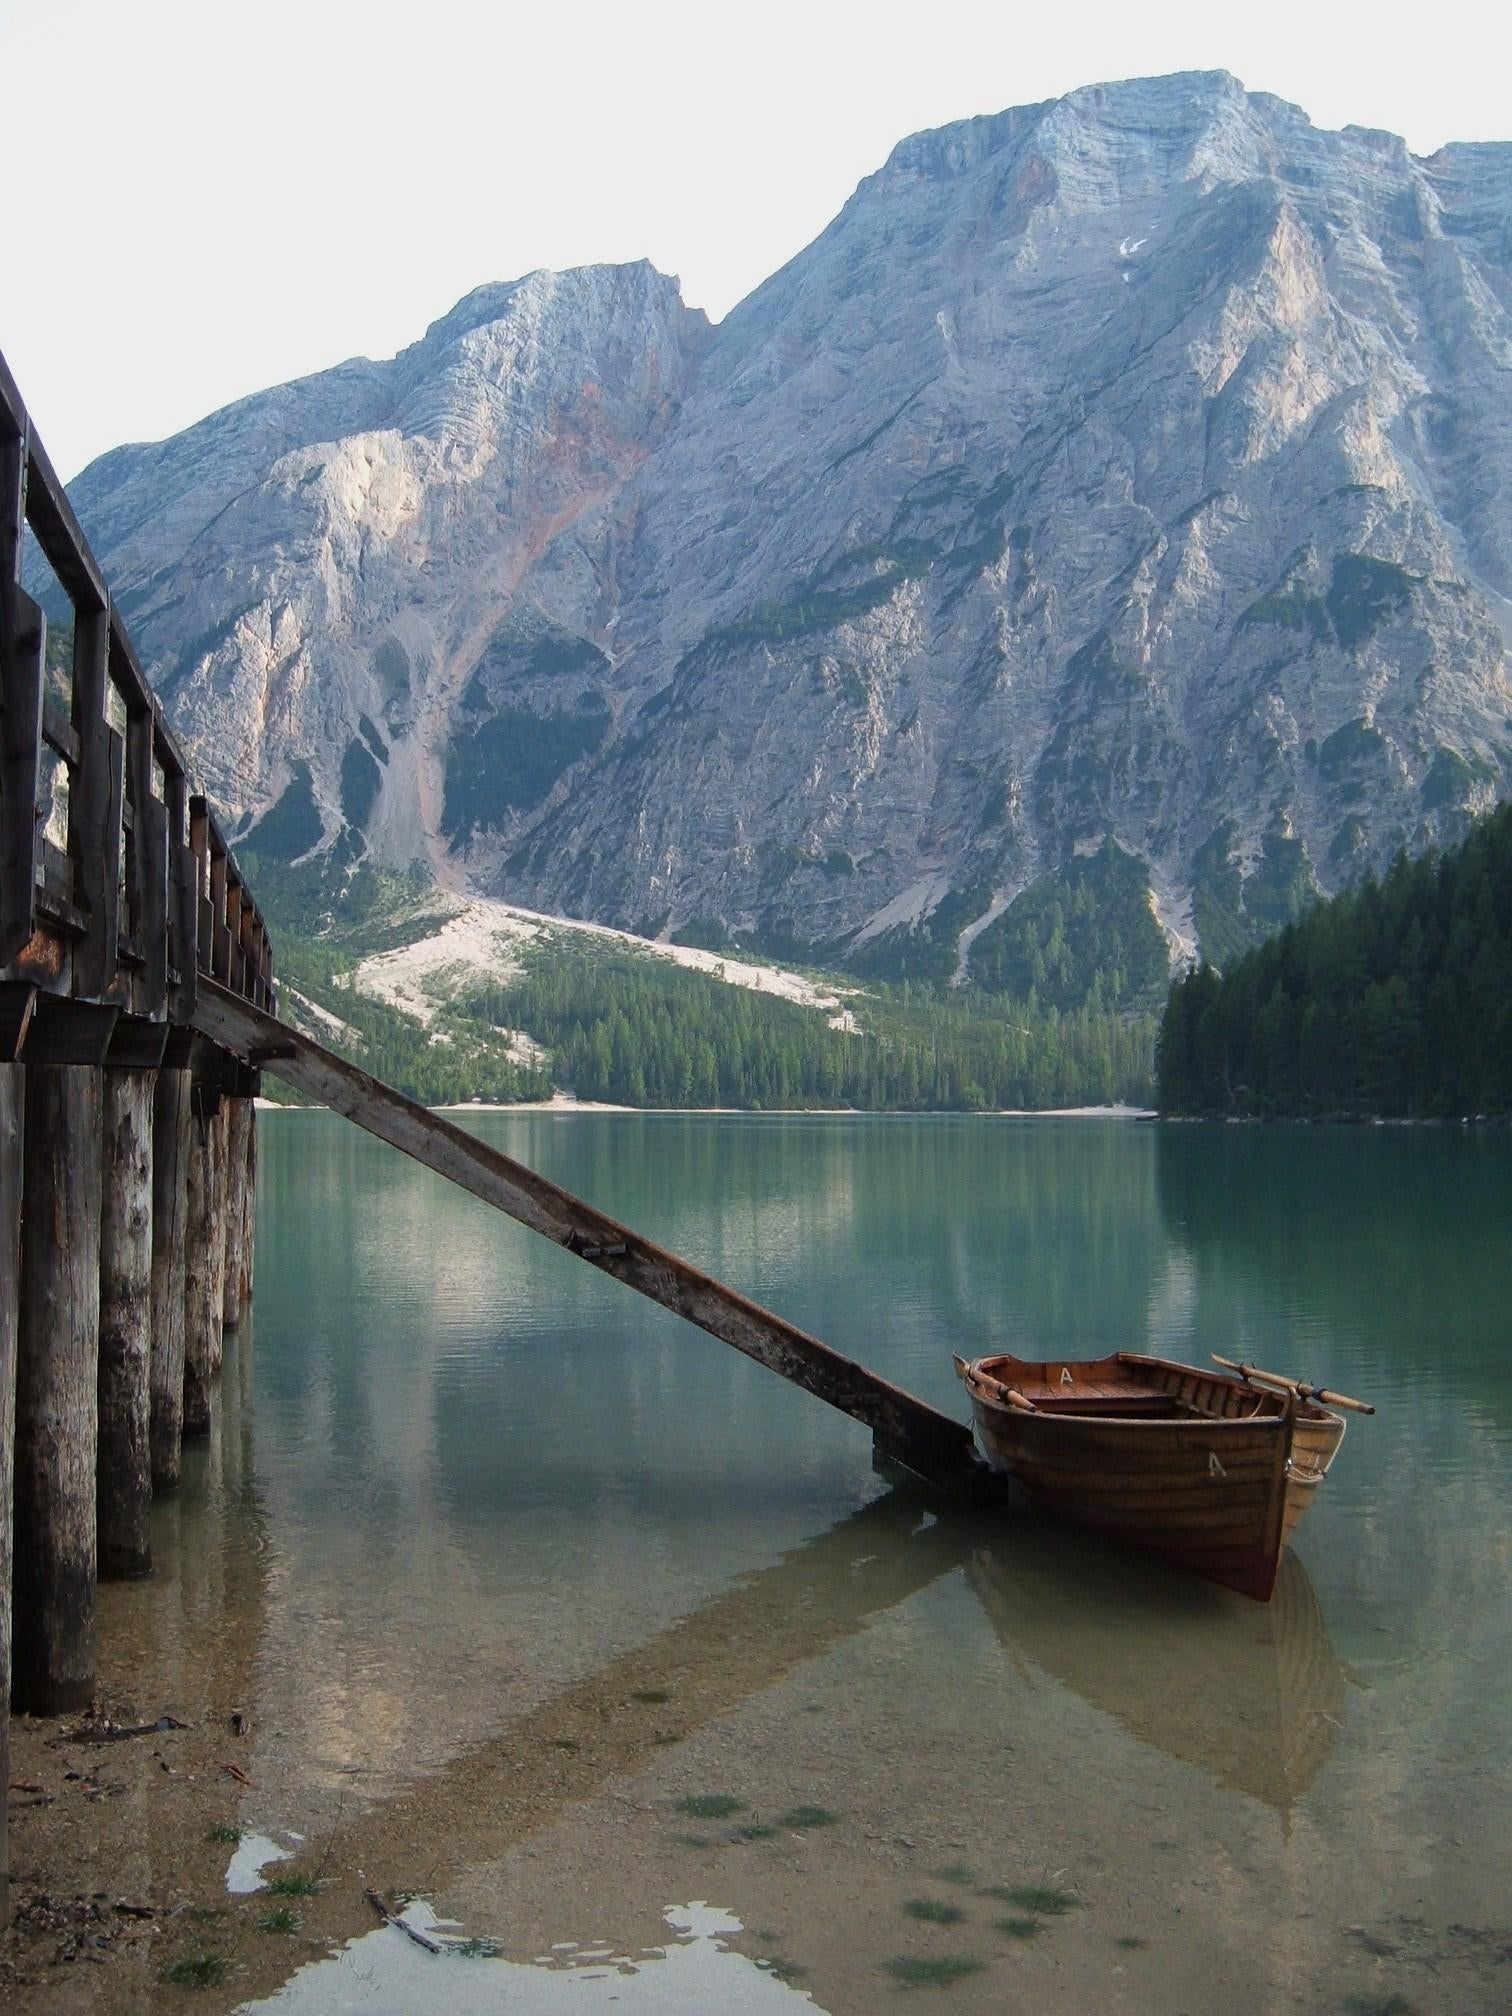 Embalse en Lago de Braies